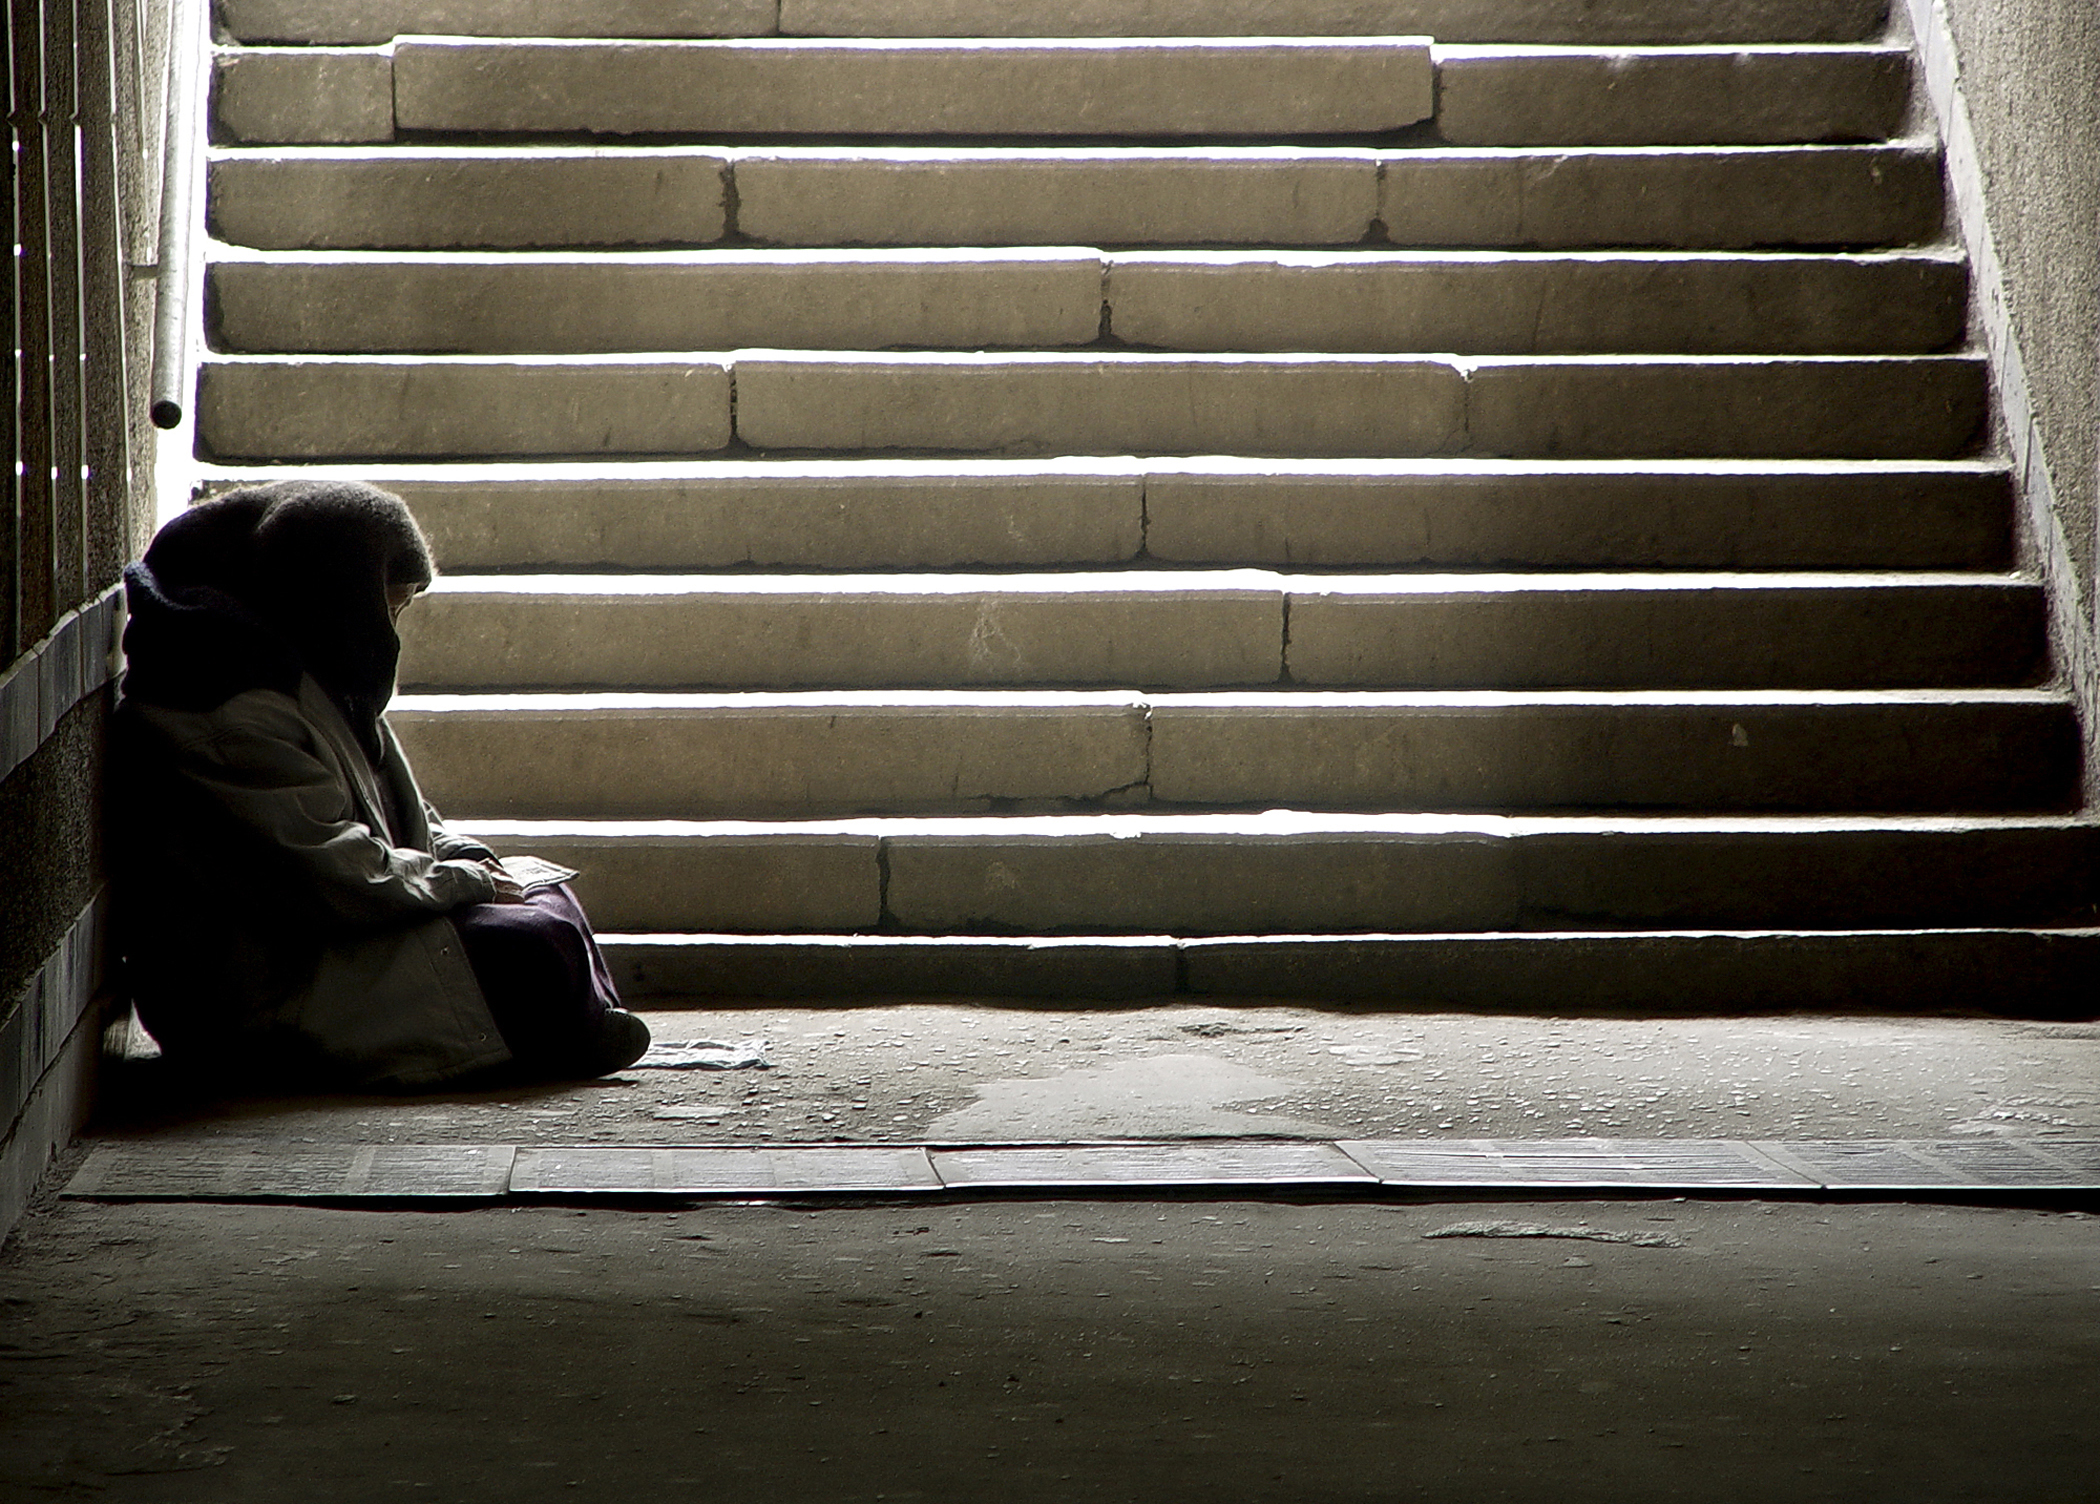 A homeless person. Image credit: iStock